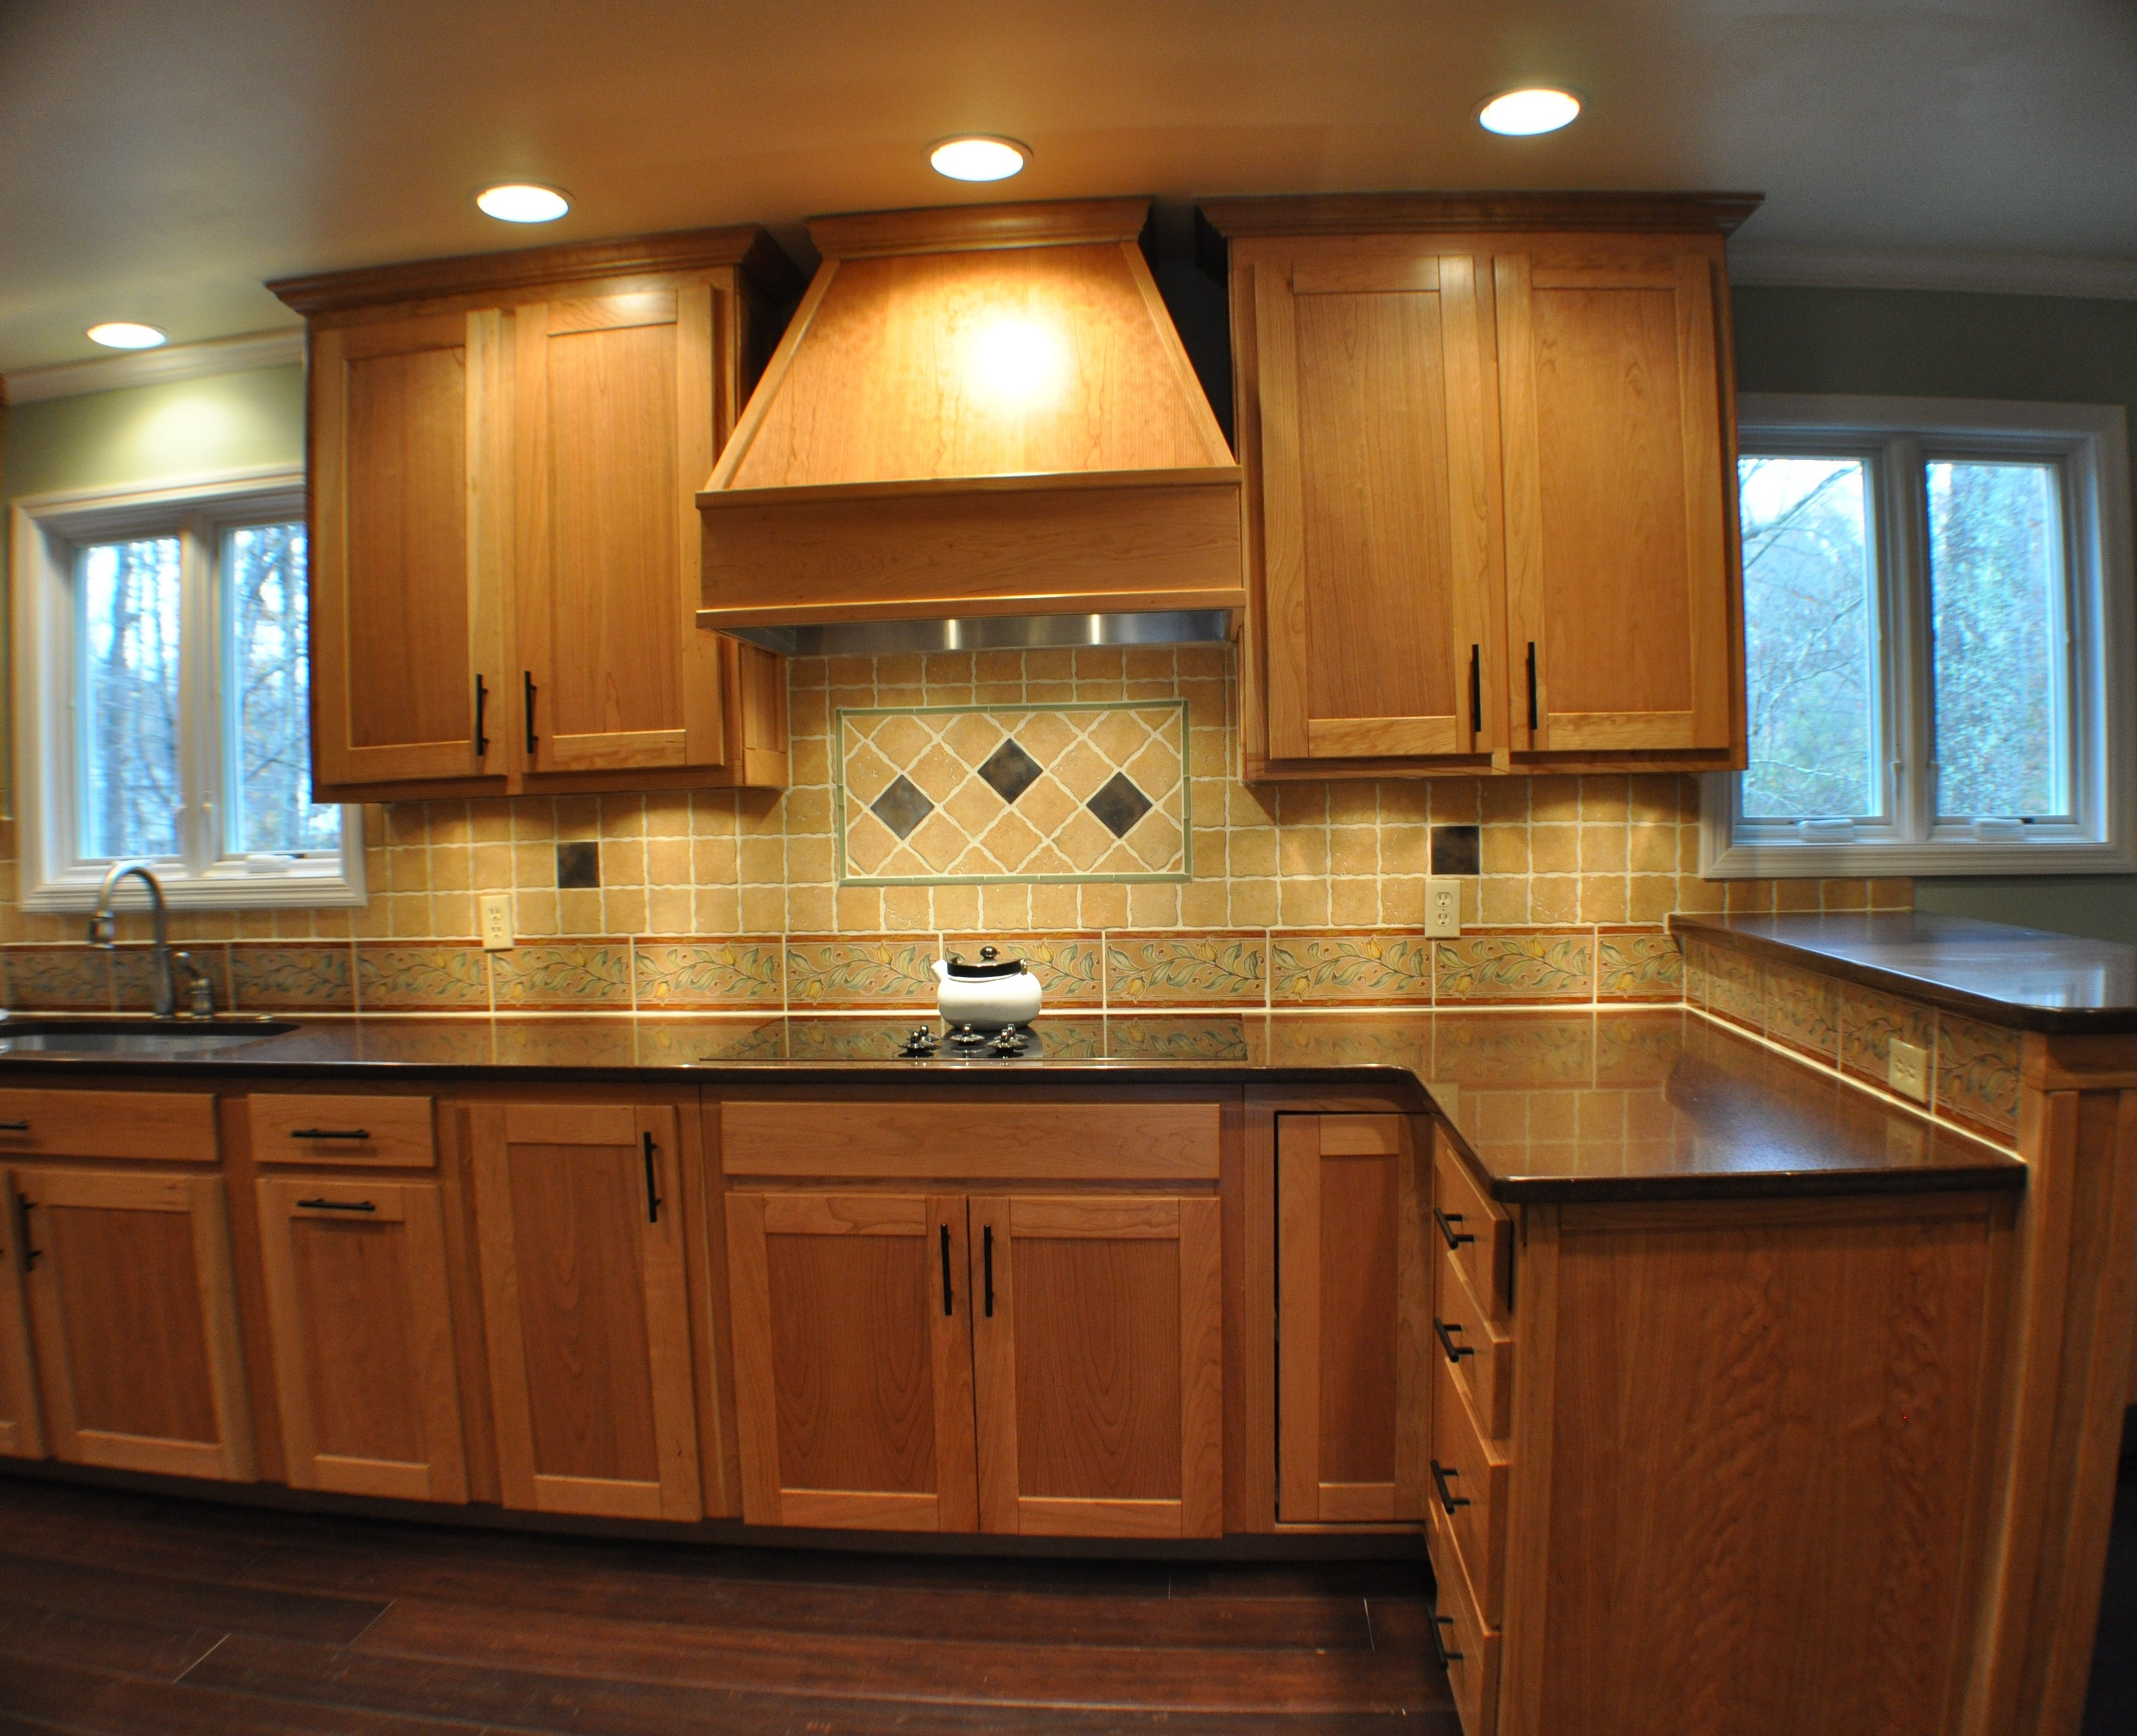 fabulous-design-ideas-of-traditional-kitchen-with-brown-wooden-kitchen-cabinets-and-black-granite-countertop-also-double-door-wall-mounted-wooden-kitchen-cabinets-also-brown-color-tiles-backsplash-and